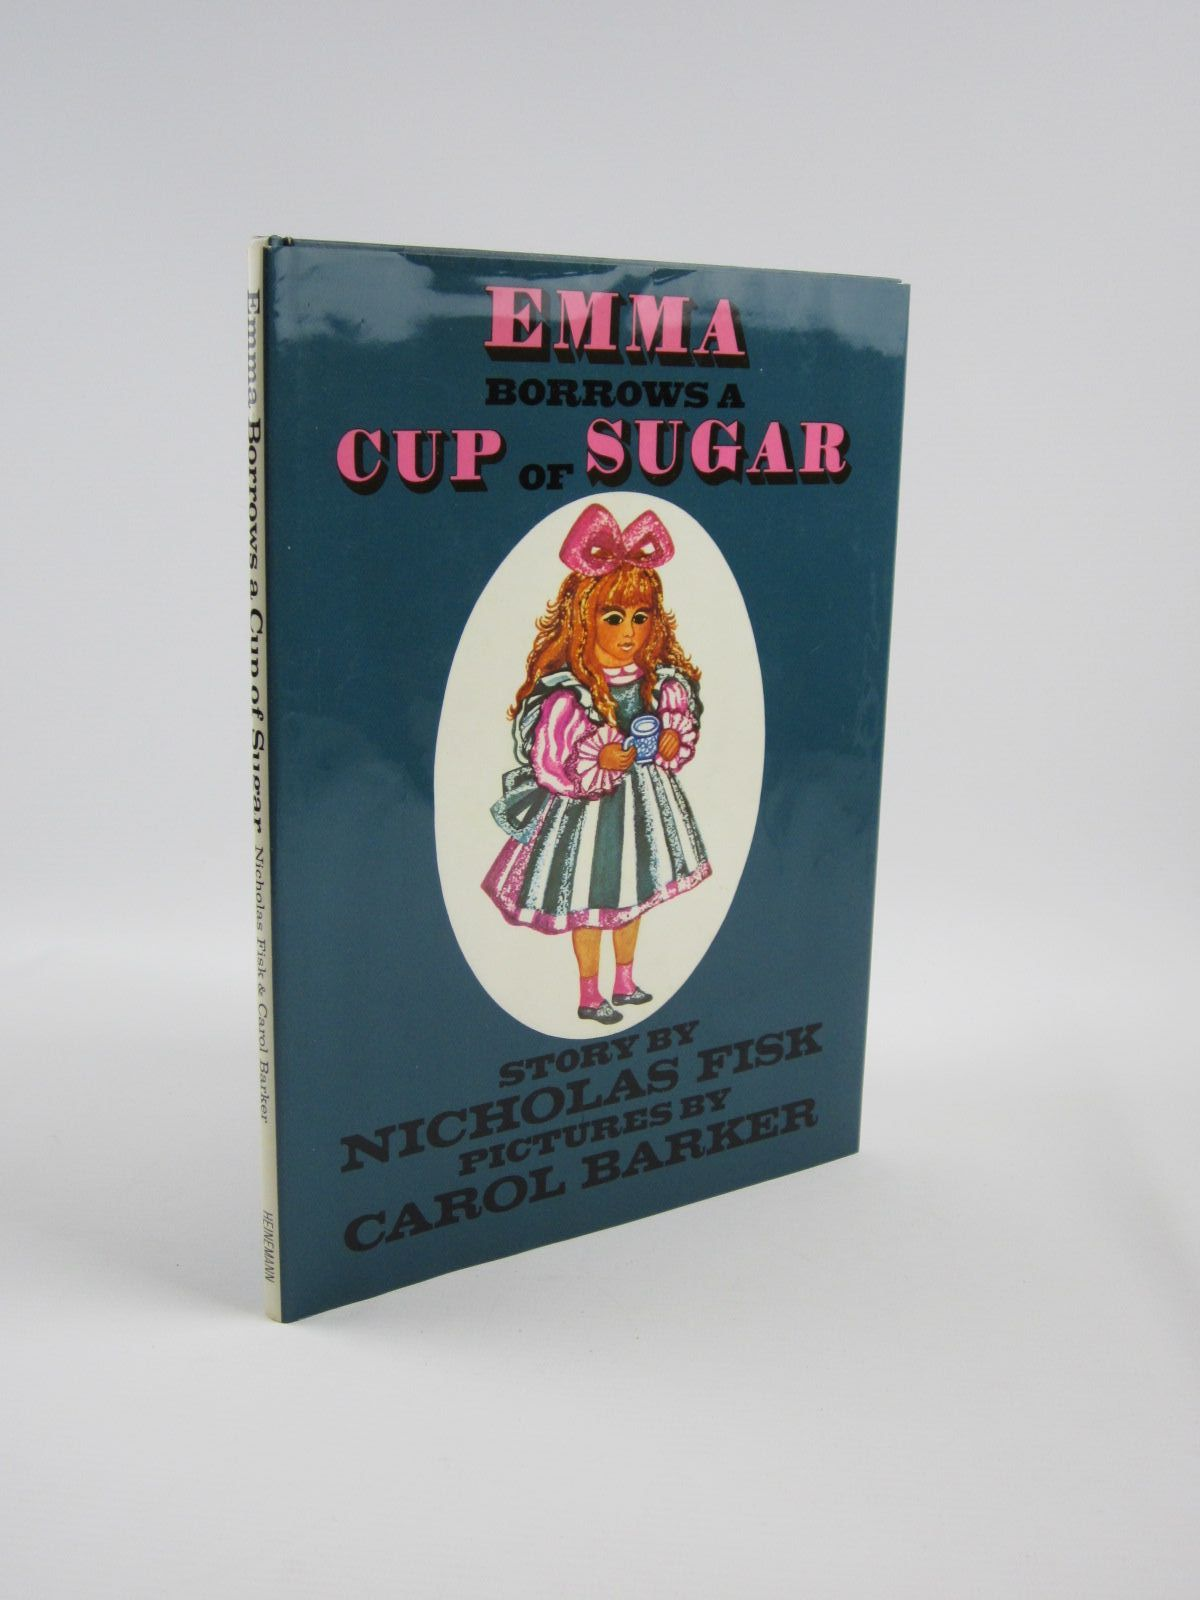 Photo of EMMA BORROWS A CUP OF SUGAR written by Fisk, Nicholas illustrated by Barker, Carol published by Heinemann (STOCK CODE: 1310162)  for sale by Stella & Rose's Books